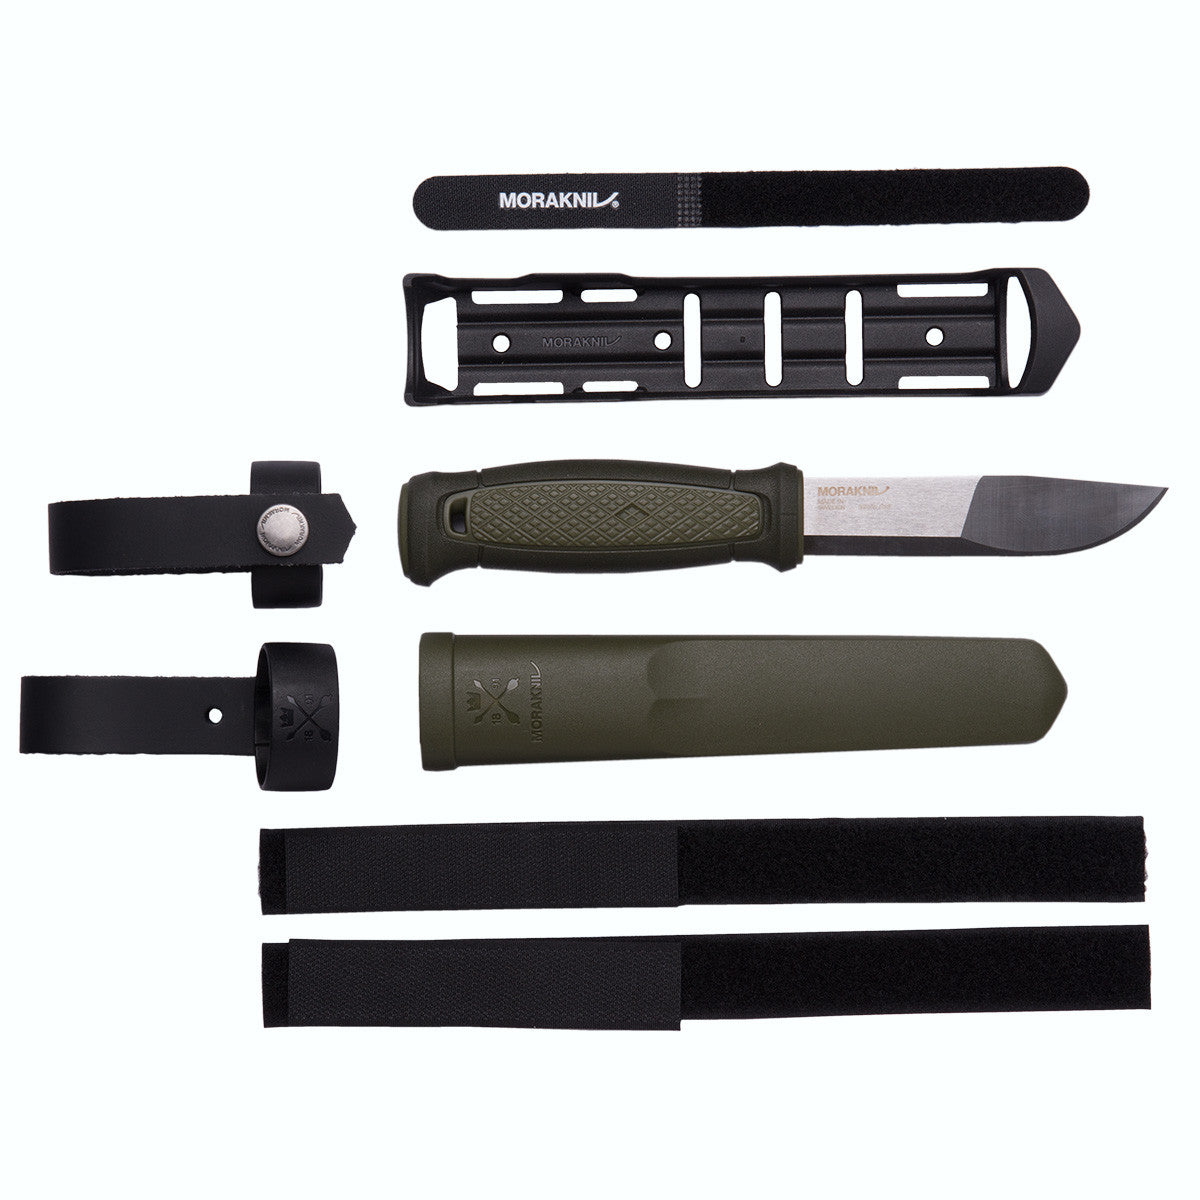 Morakniv Morakniv Kamnsbol with Clam Sheath and Multi Mount Accessories - BNR Industrial